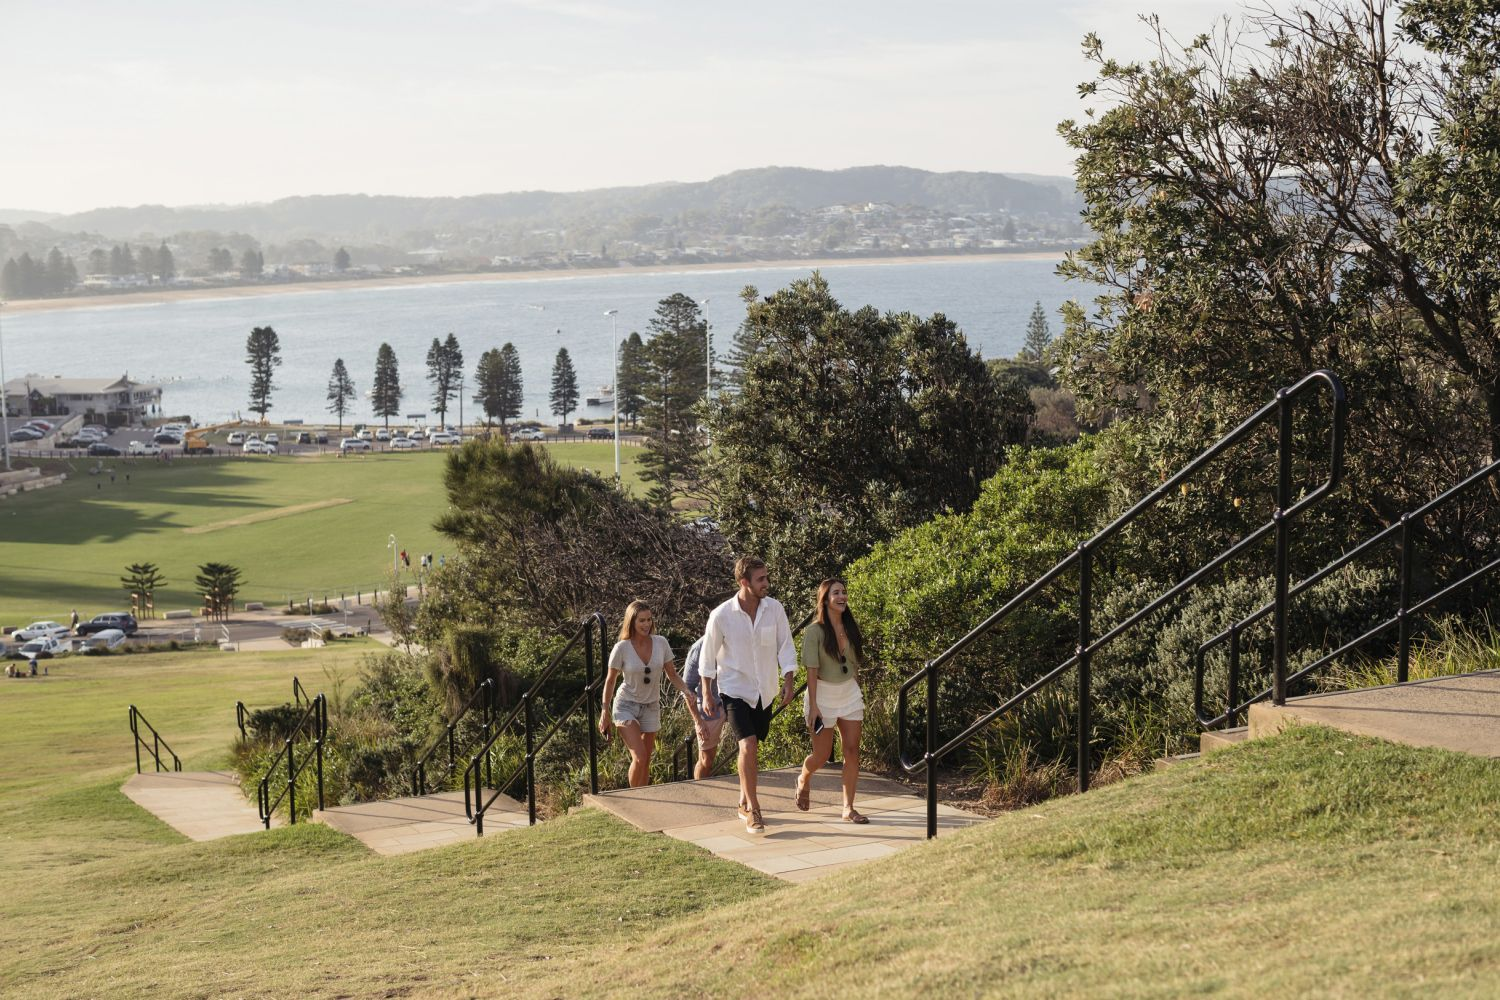 Friends walking to the lookout at the top of The Skillion in Terrigal, Central Coast